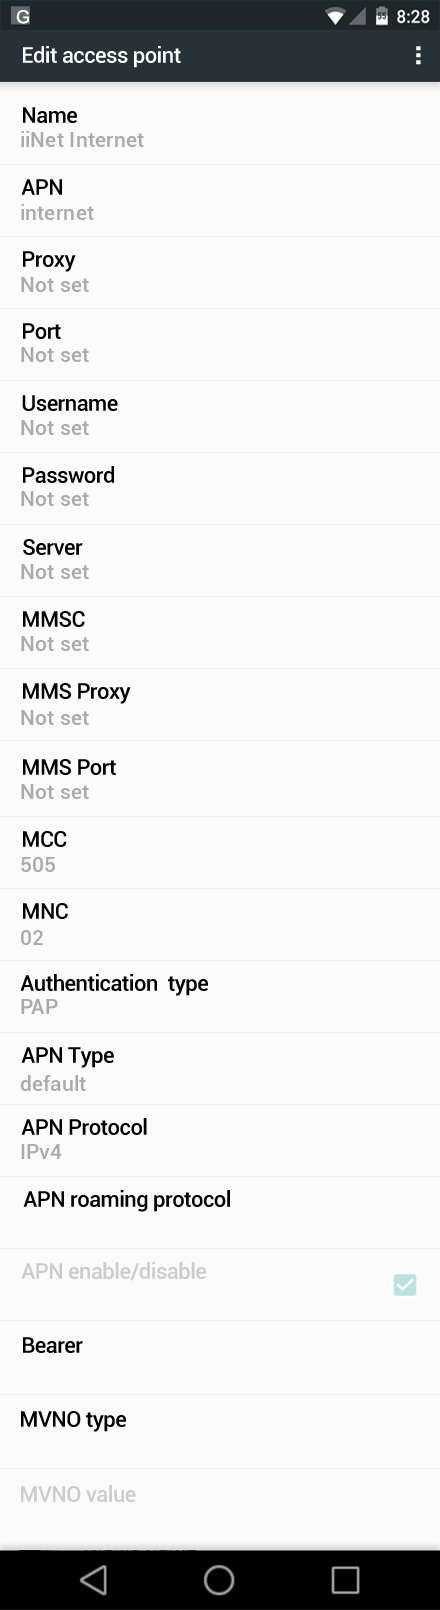 iiNet Internet APN settings for Android Marshmallow screenshot